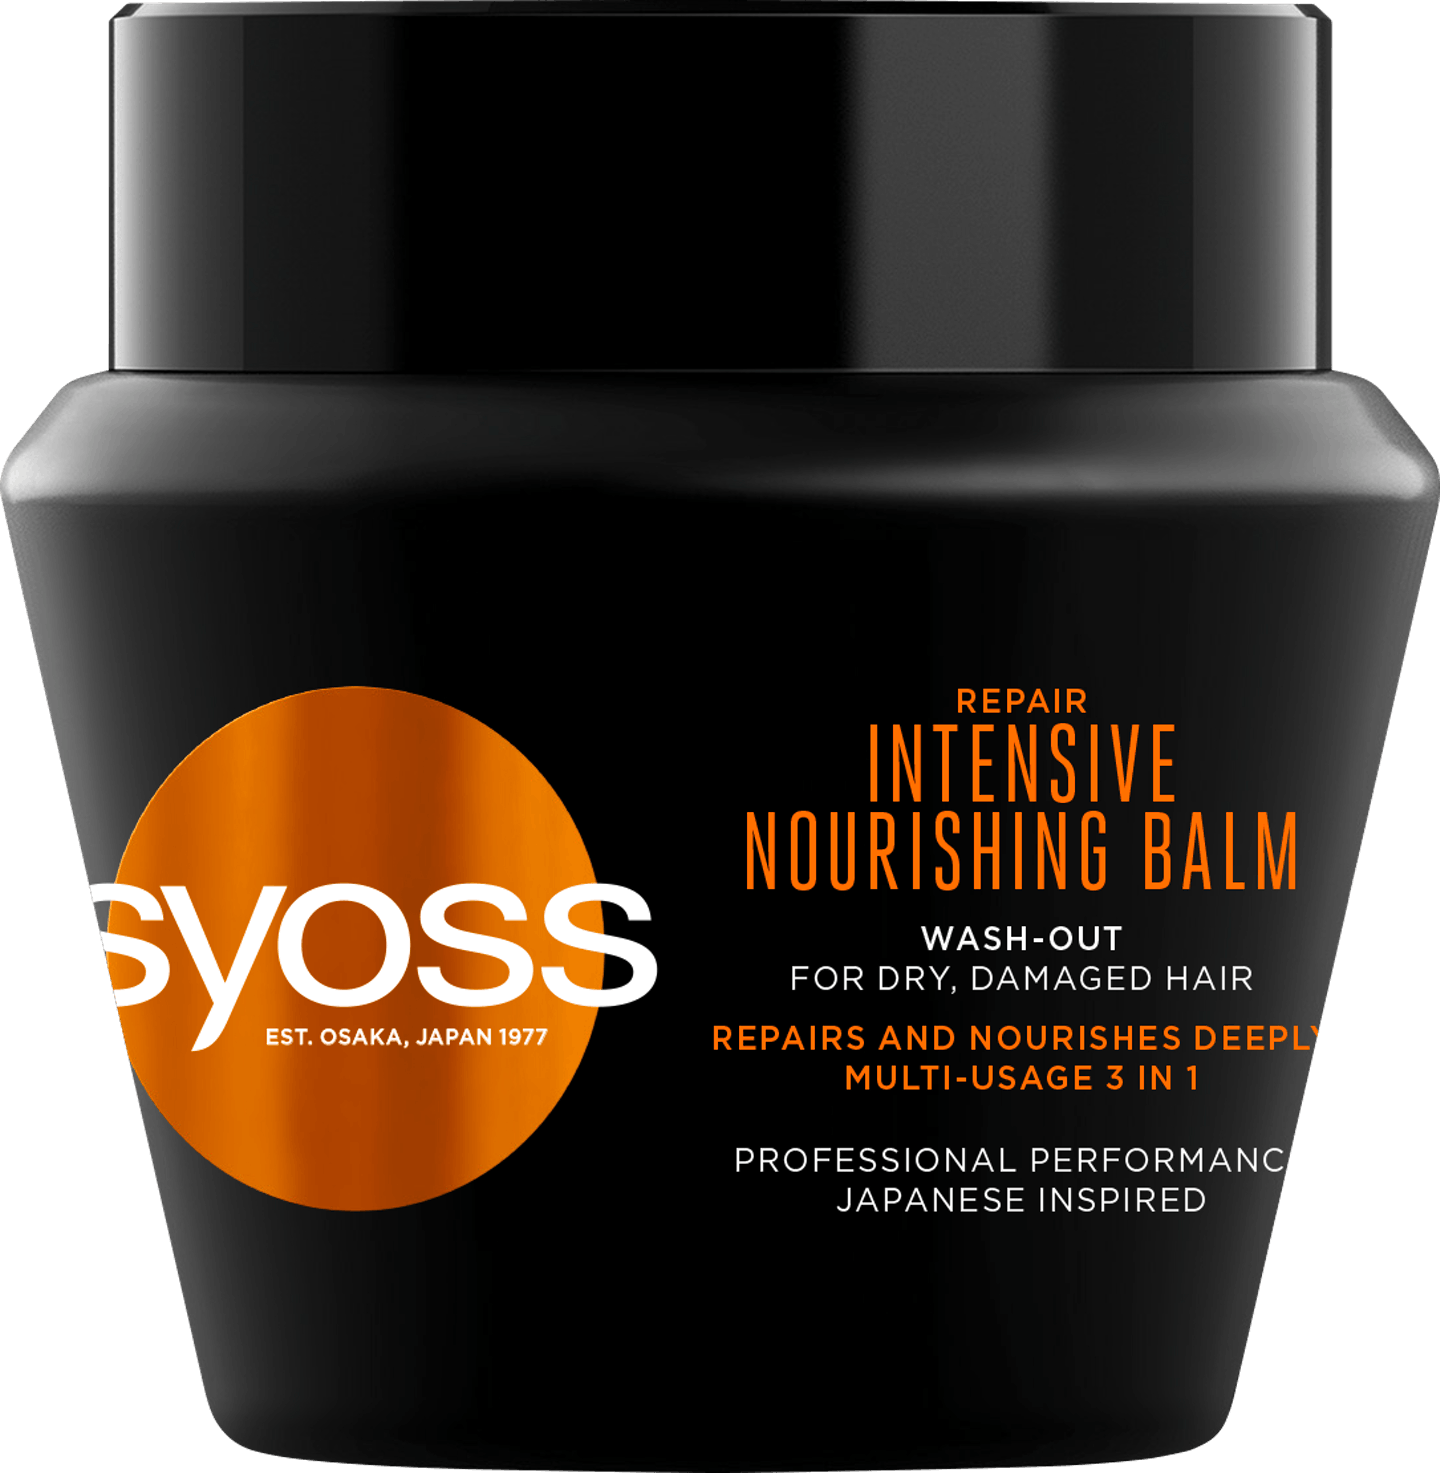 Repair Intensive Nourishing Balm